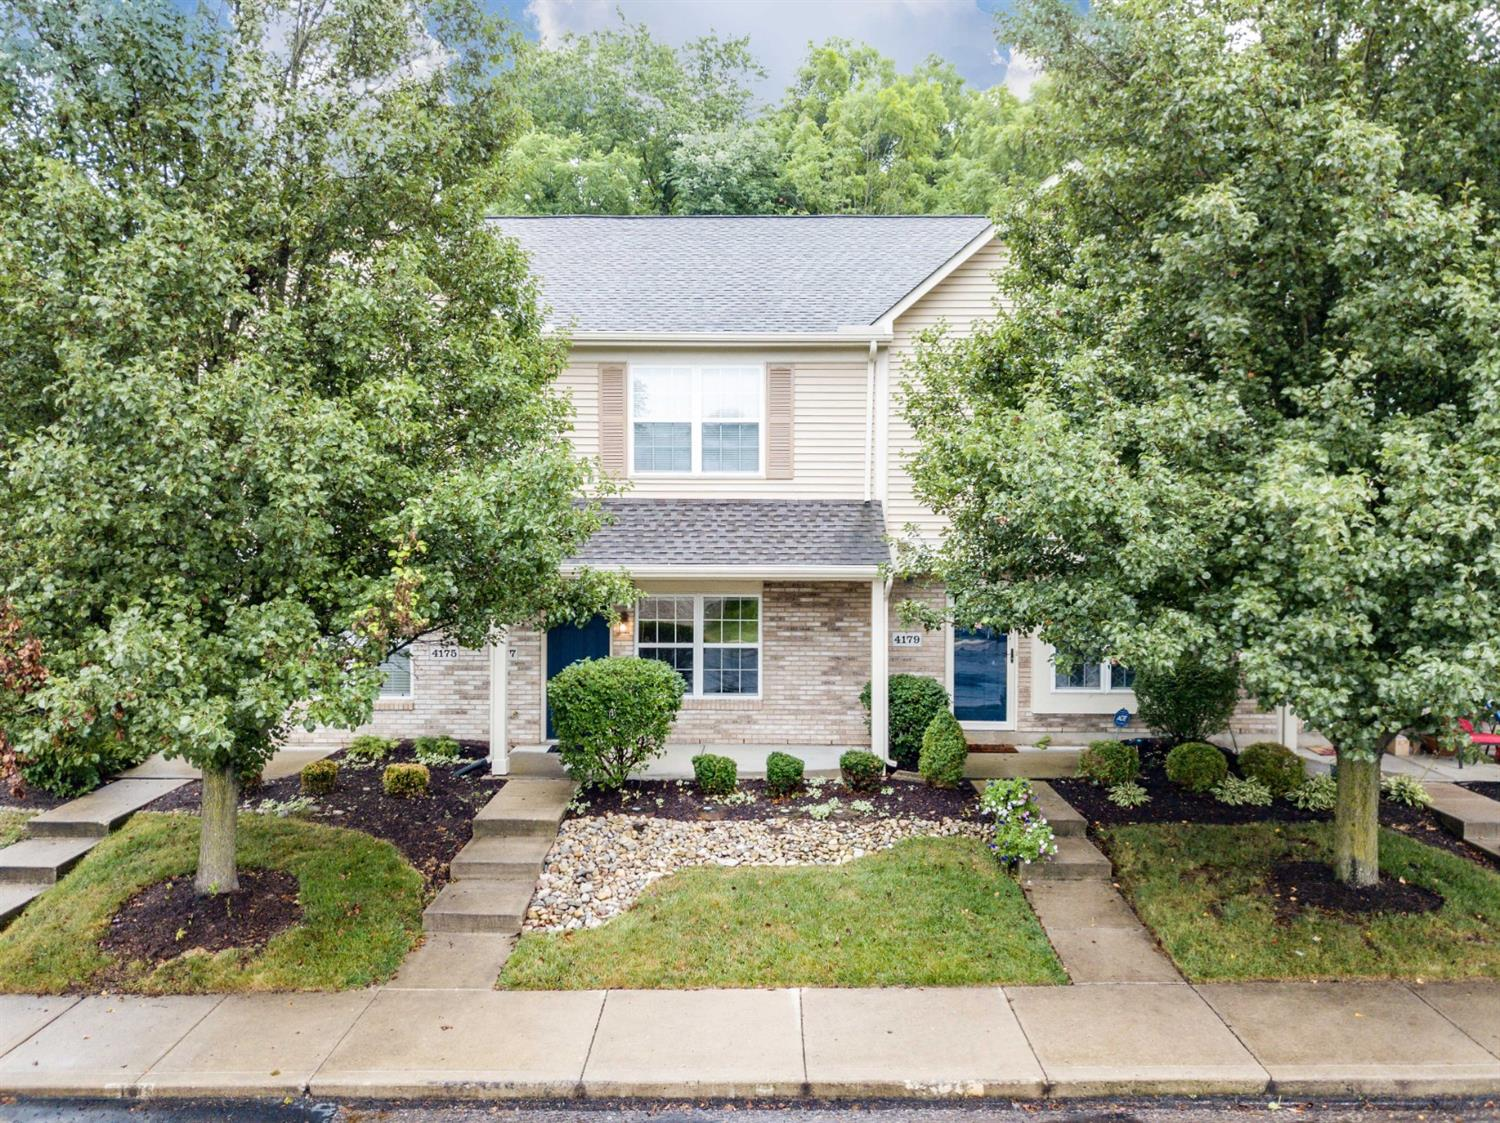 Property for sale at 4177 Spyglass Hill, Mason,  Ohio 45040